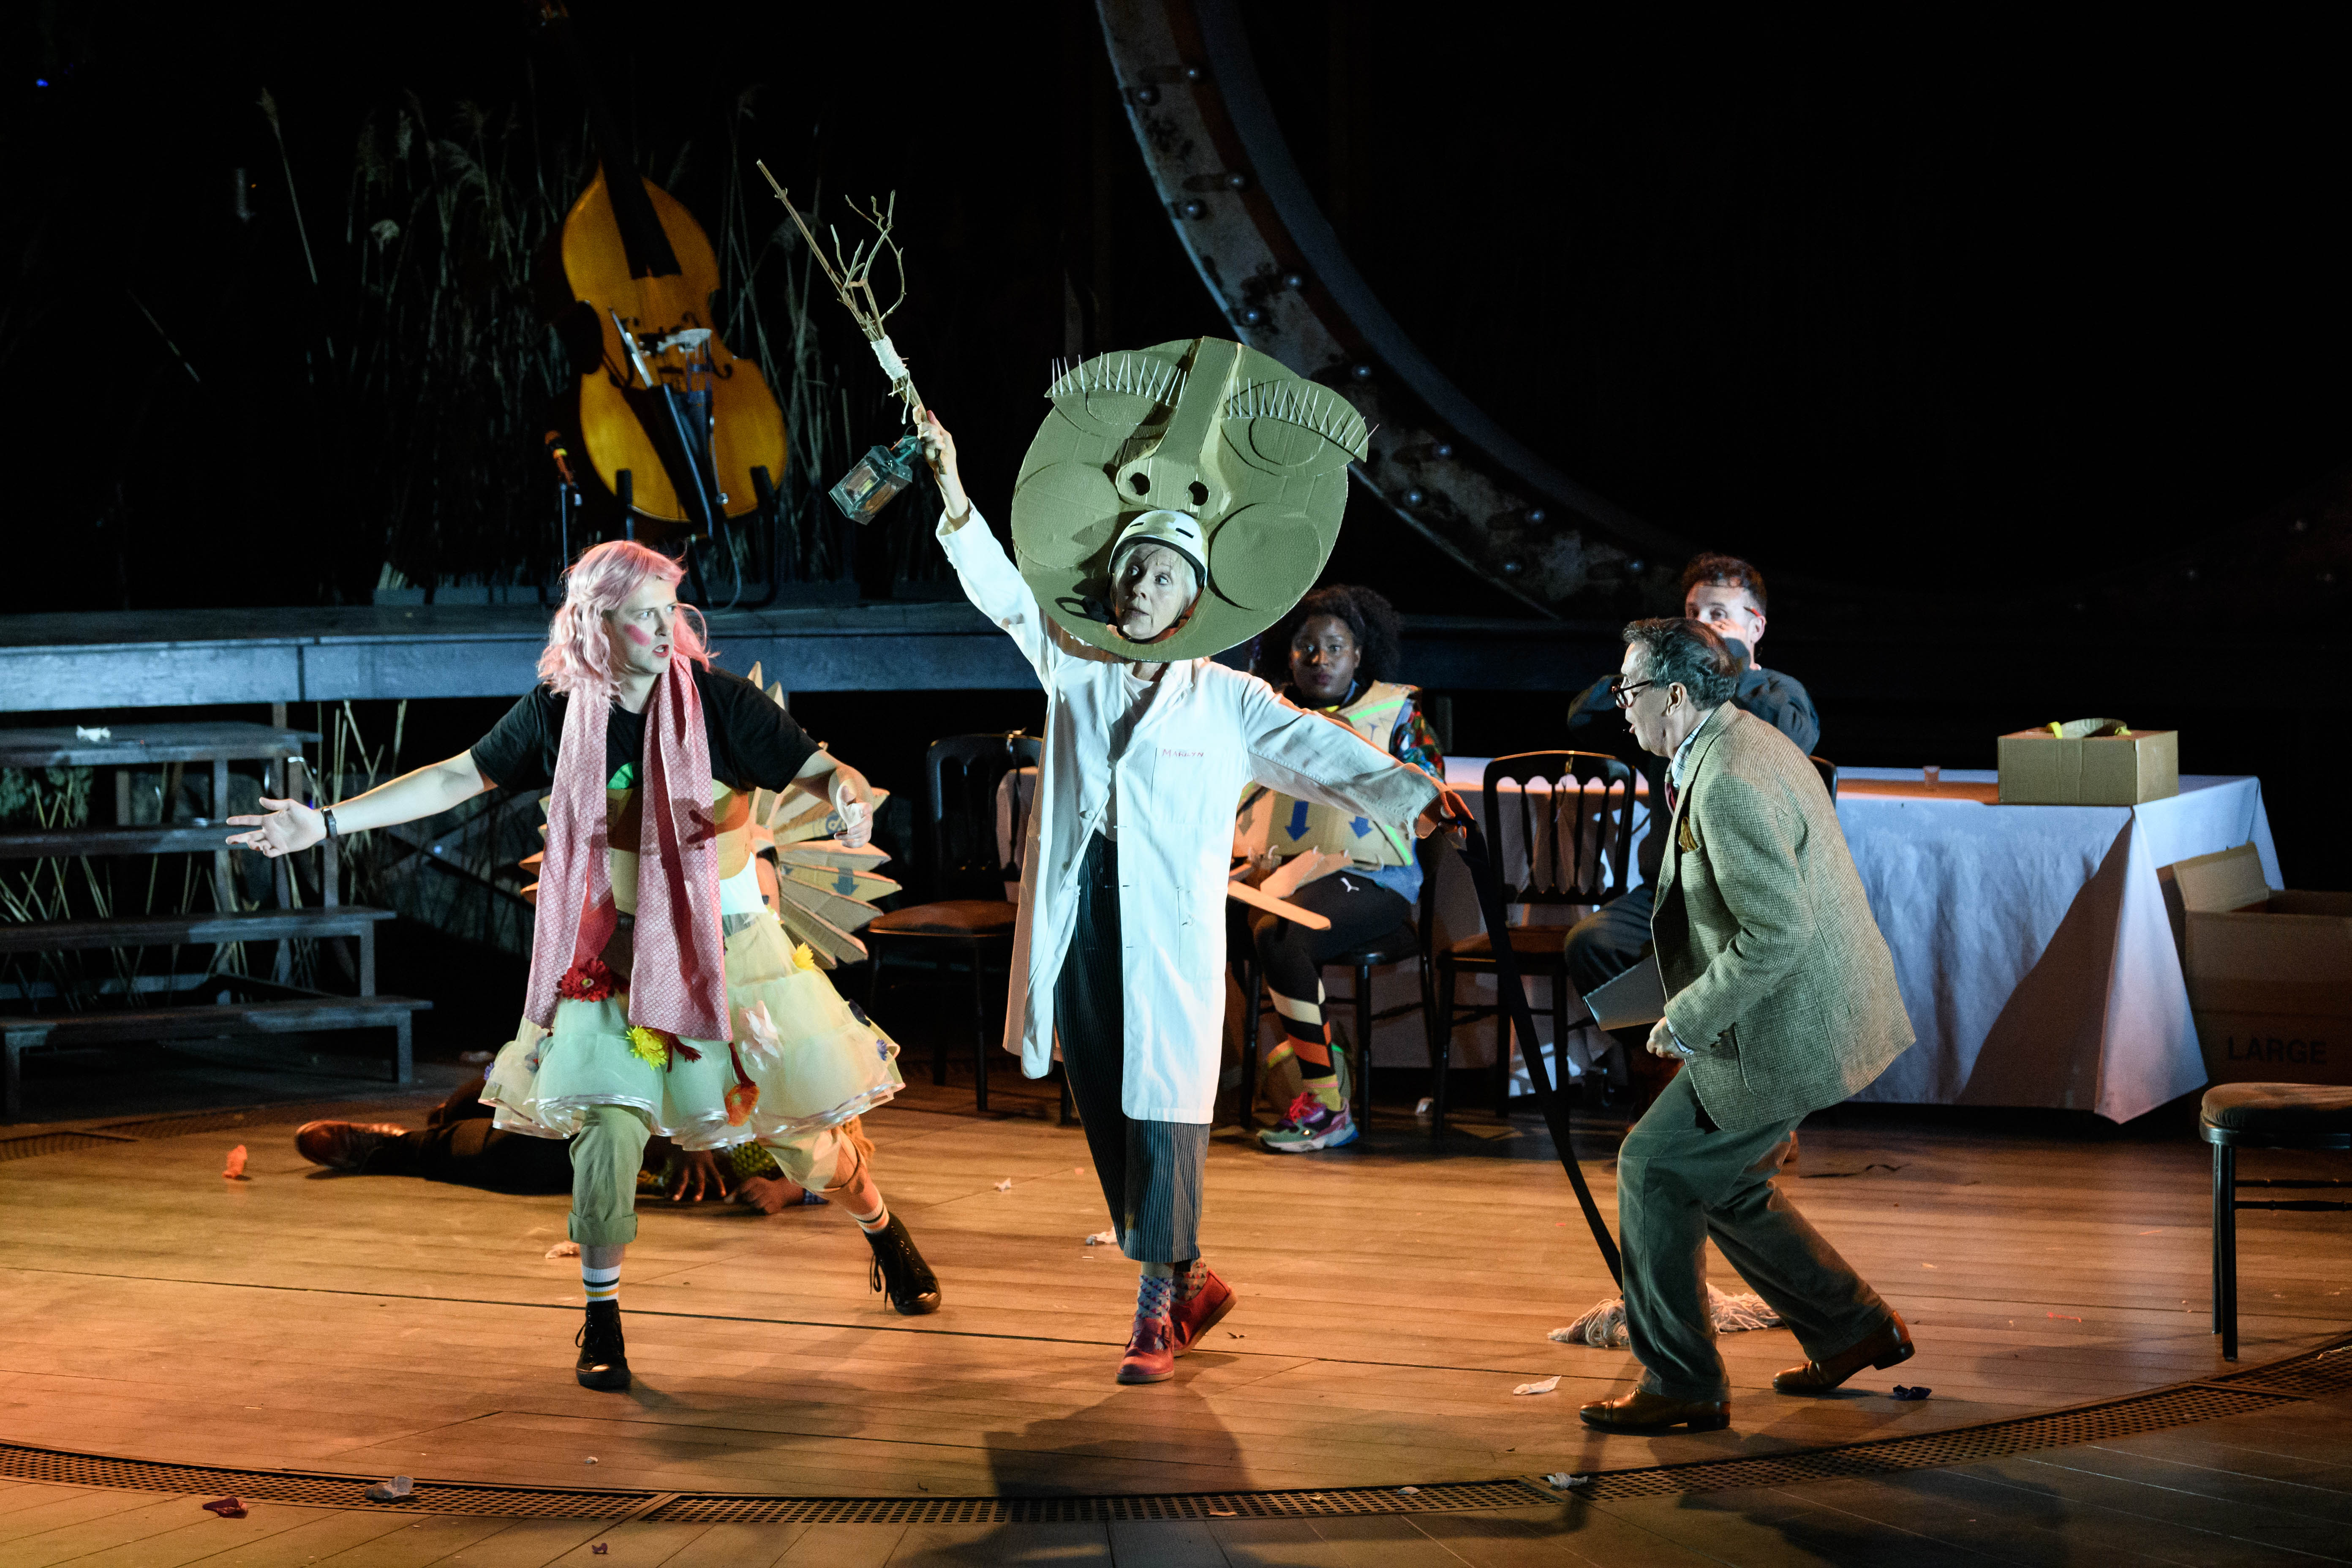 Joshua Miles, Liz Crowther, Susan Wokoma, Gareth Snook and Lee Mengo as Flute, Starveling, Bottom, Quince and Snout in A Midsummer Night's Dream at the Open Air Theatre. Photo Jane Hobson